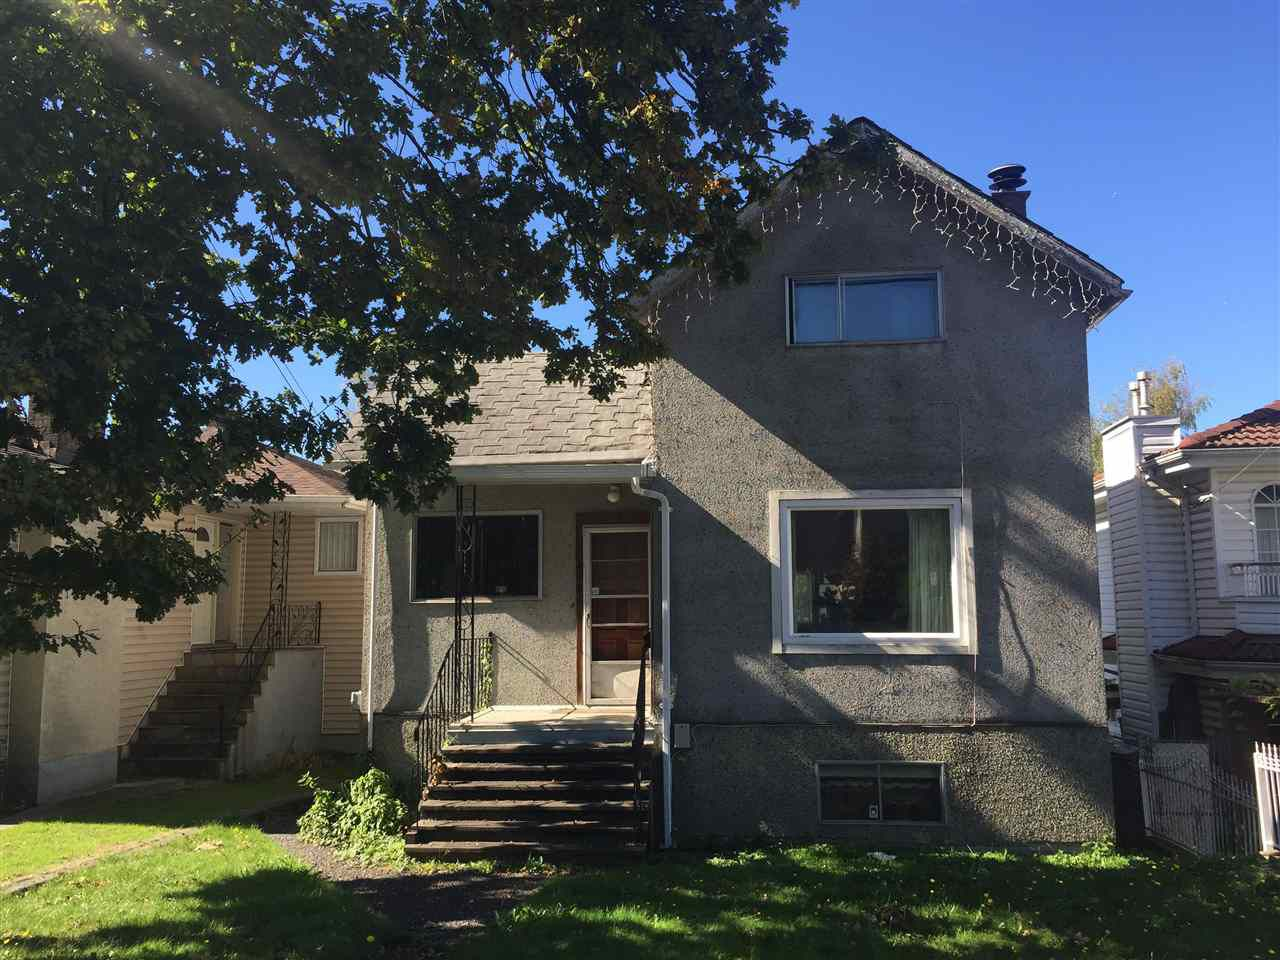 Main Photo: 4031 VICTORIA Drive in Vancouver: Victoria VE House for sale (Vancouver East)  : MLS®# R2004398